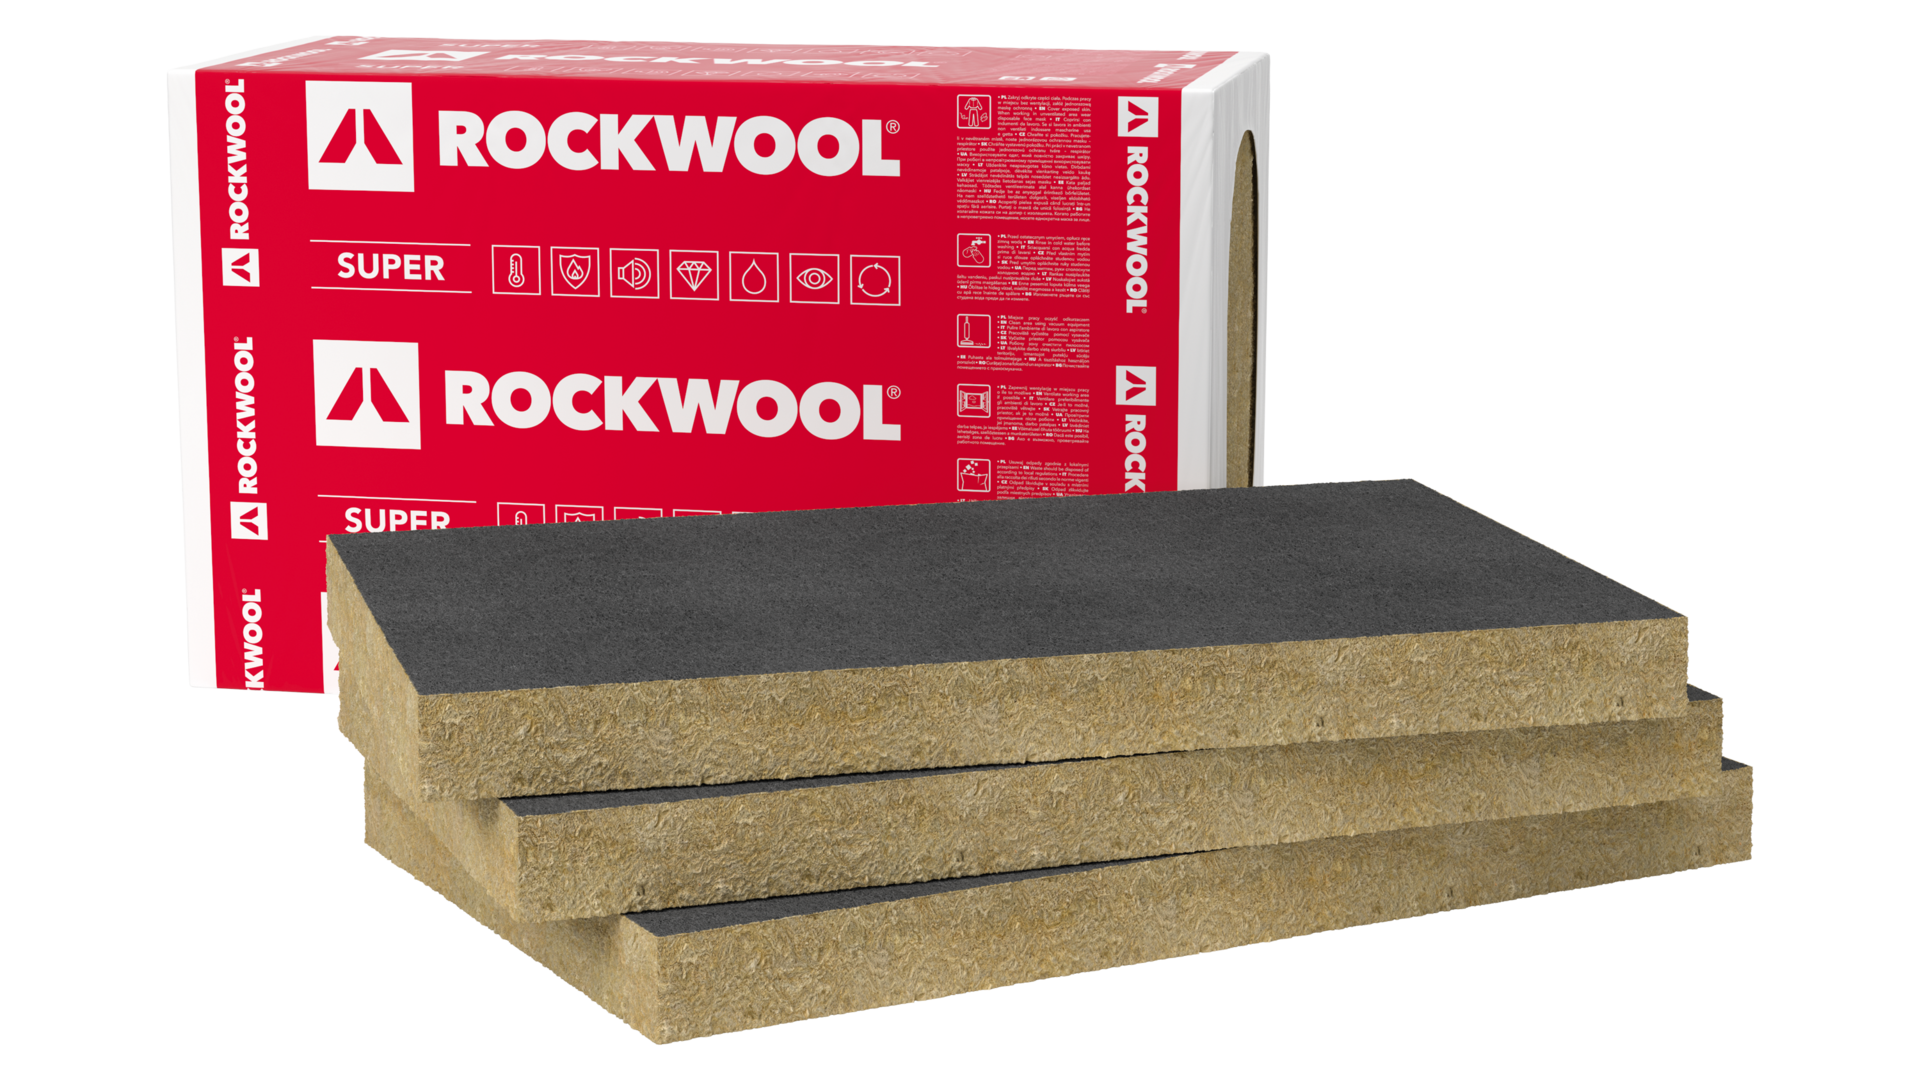 package, slabs, ewi, facade, products, external wall insulation, ventilated facade, ventirock f super